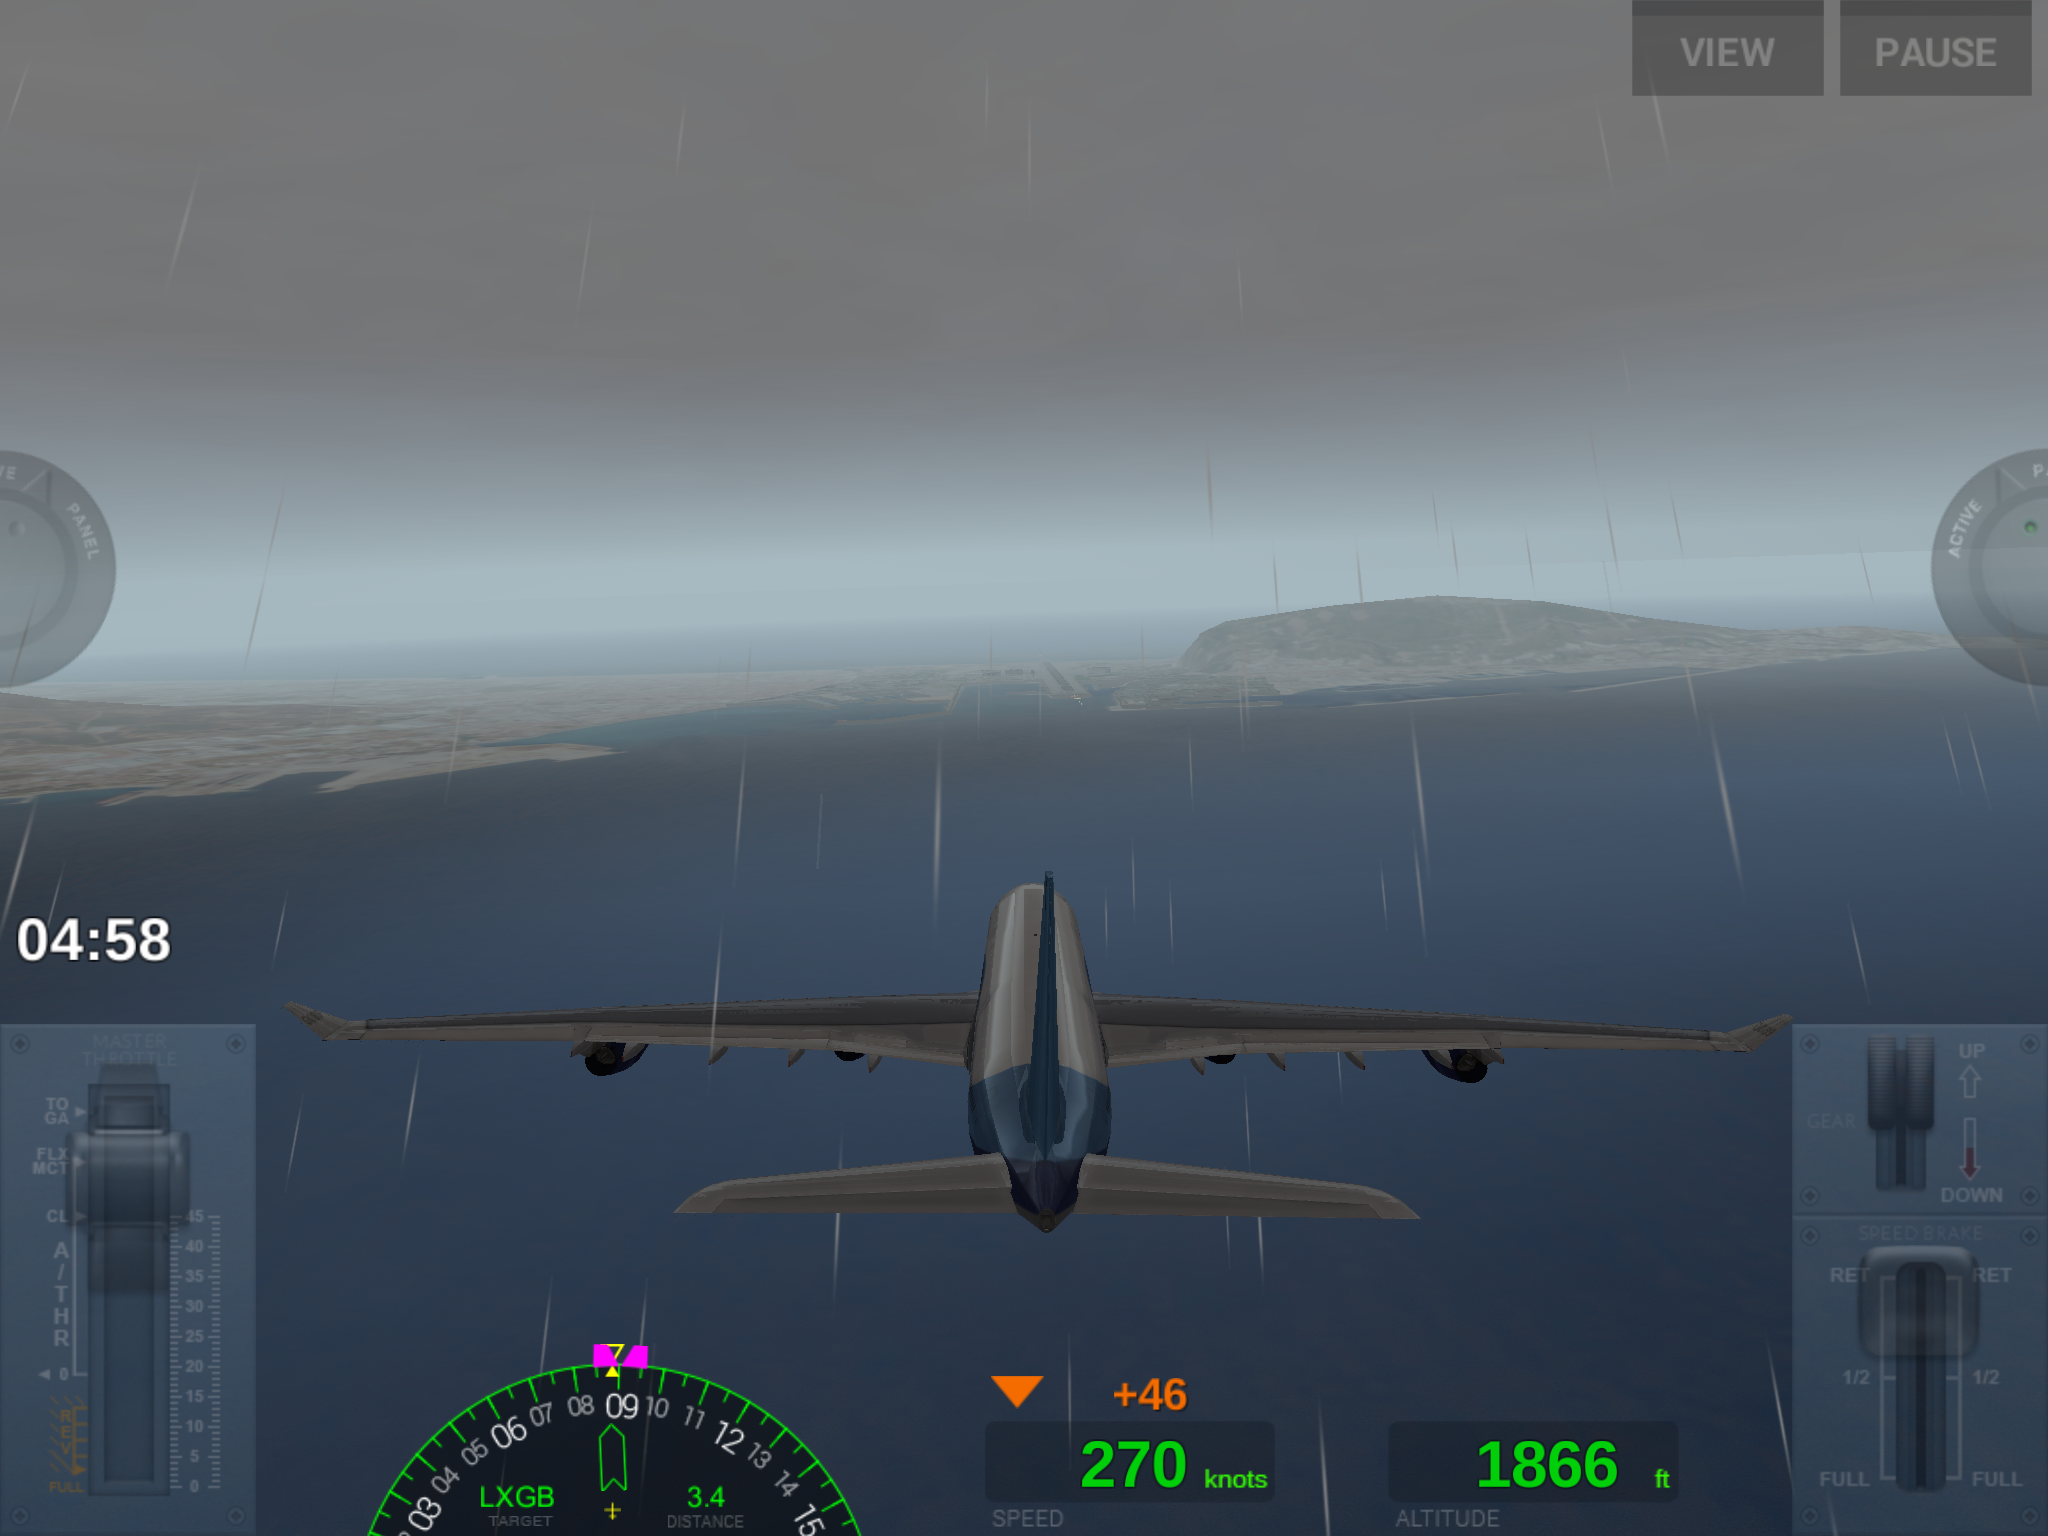 An iPad screenshot of an aircraft coming in to land at Gibraltar Airport (LXGB) on the simulator game Extreme Flight - which is also available on other devices.